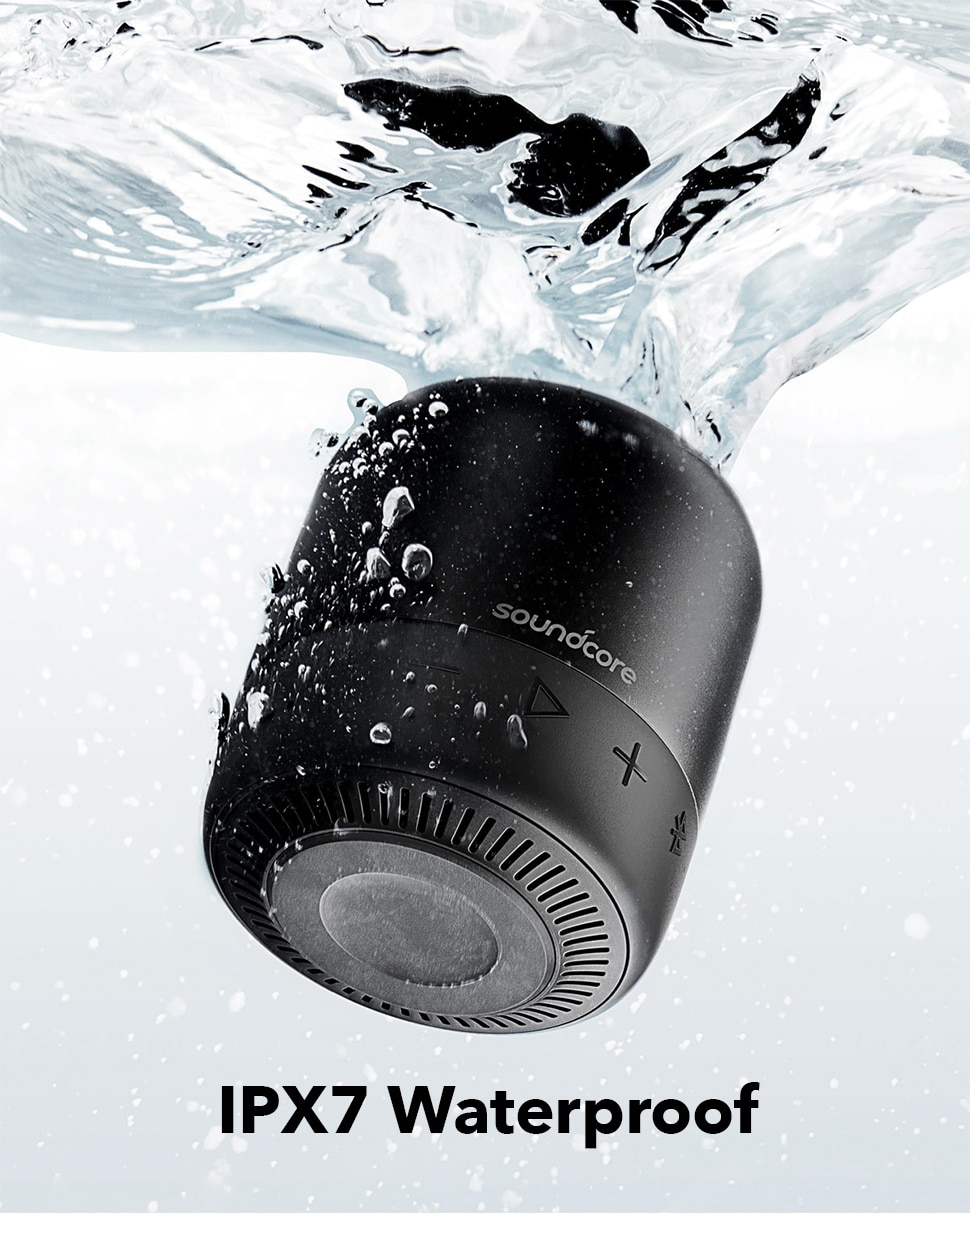 H7ac804acfb834c2eb2377df7e924ec6bo - Anker Soundcore Mini 2 Pocket Bluetooth IPX7 Waterproof Outdoor Speaker Powerful Sound with Enhanced Bass 15H Playtime